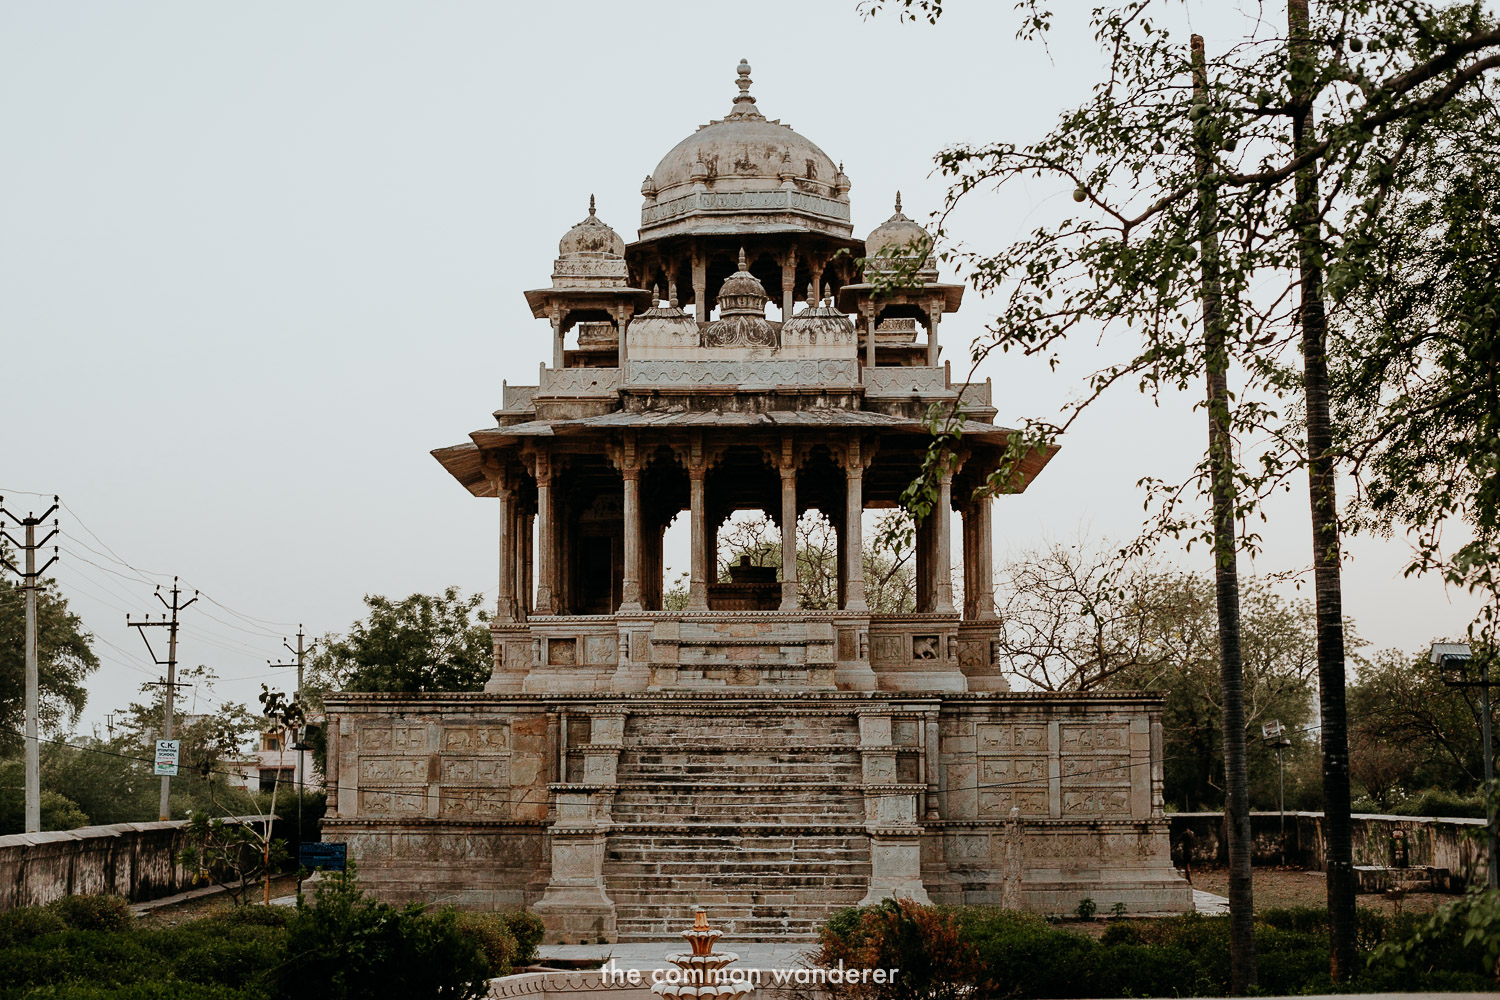 One of the best things to see in Bundi, the 84-pillared cenotaph